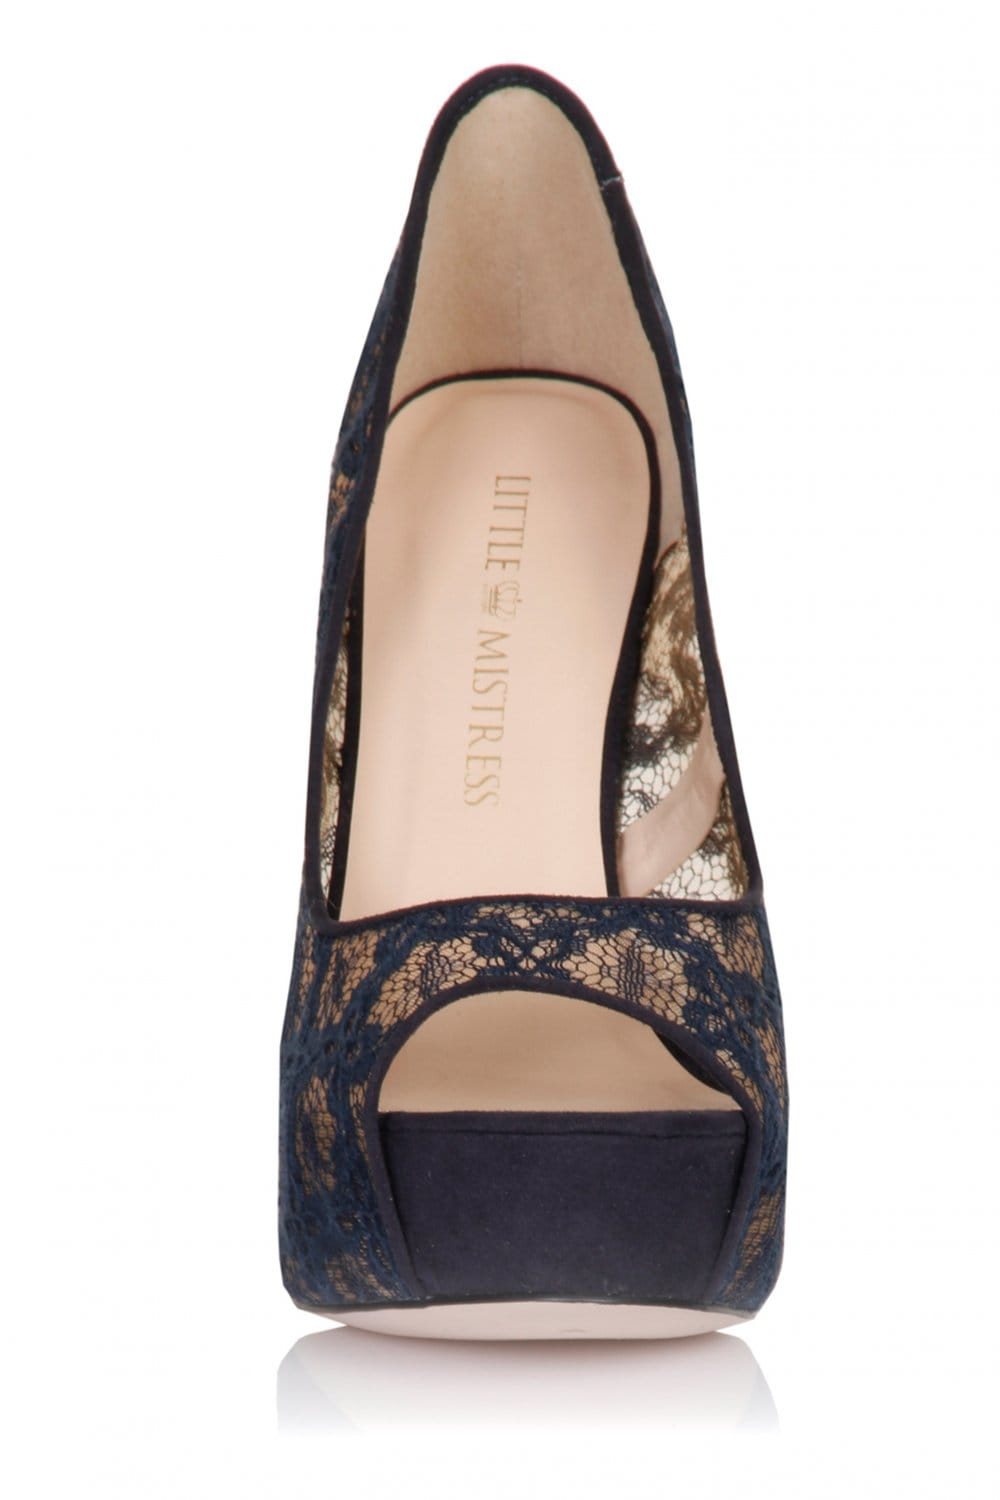 Navy Floral Lace Peep Toe Heels - from Little Mistress UK